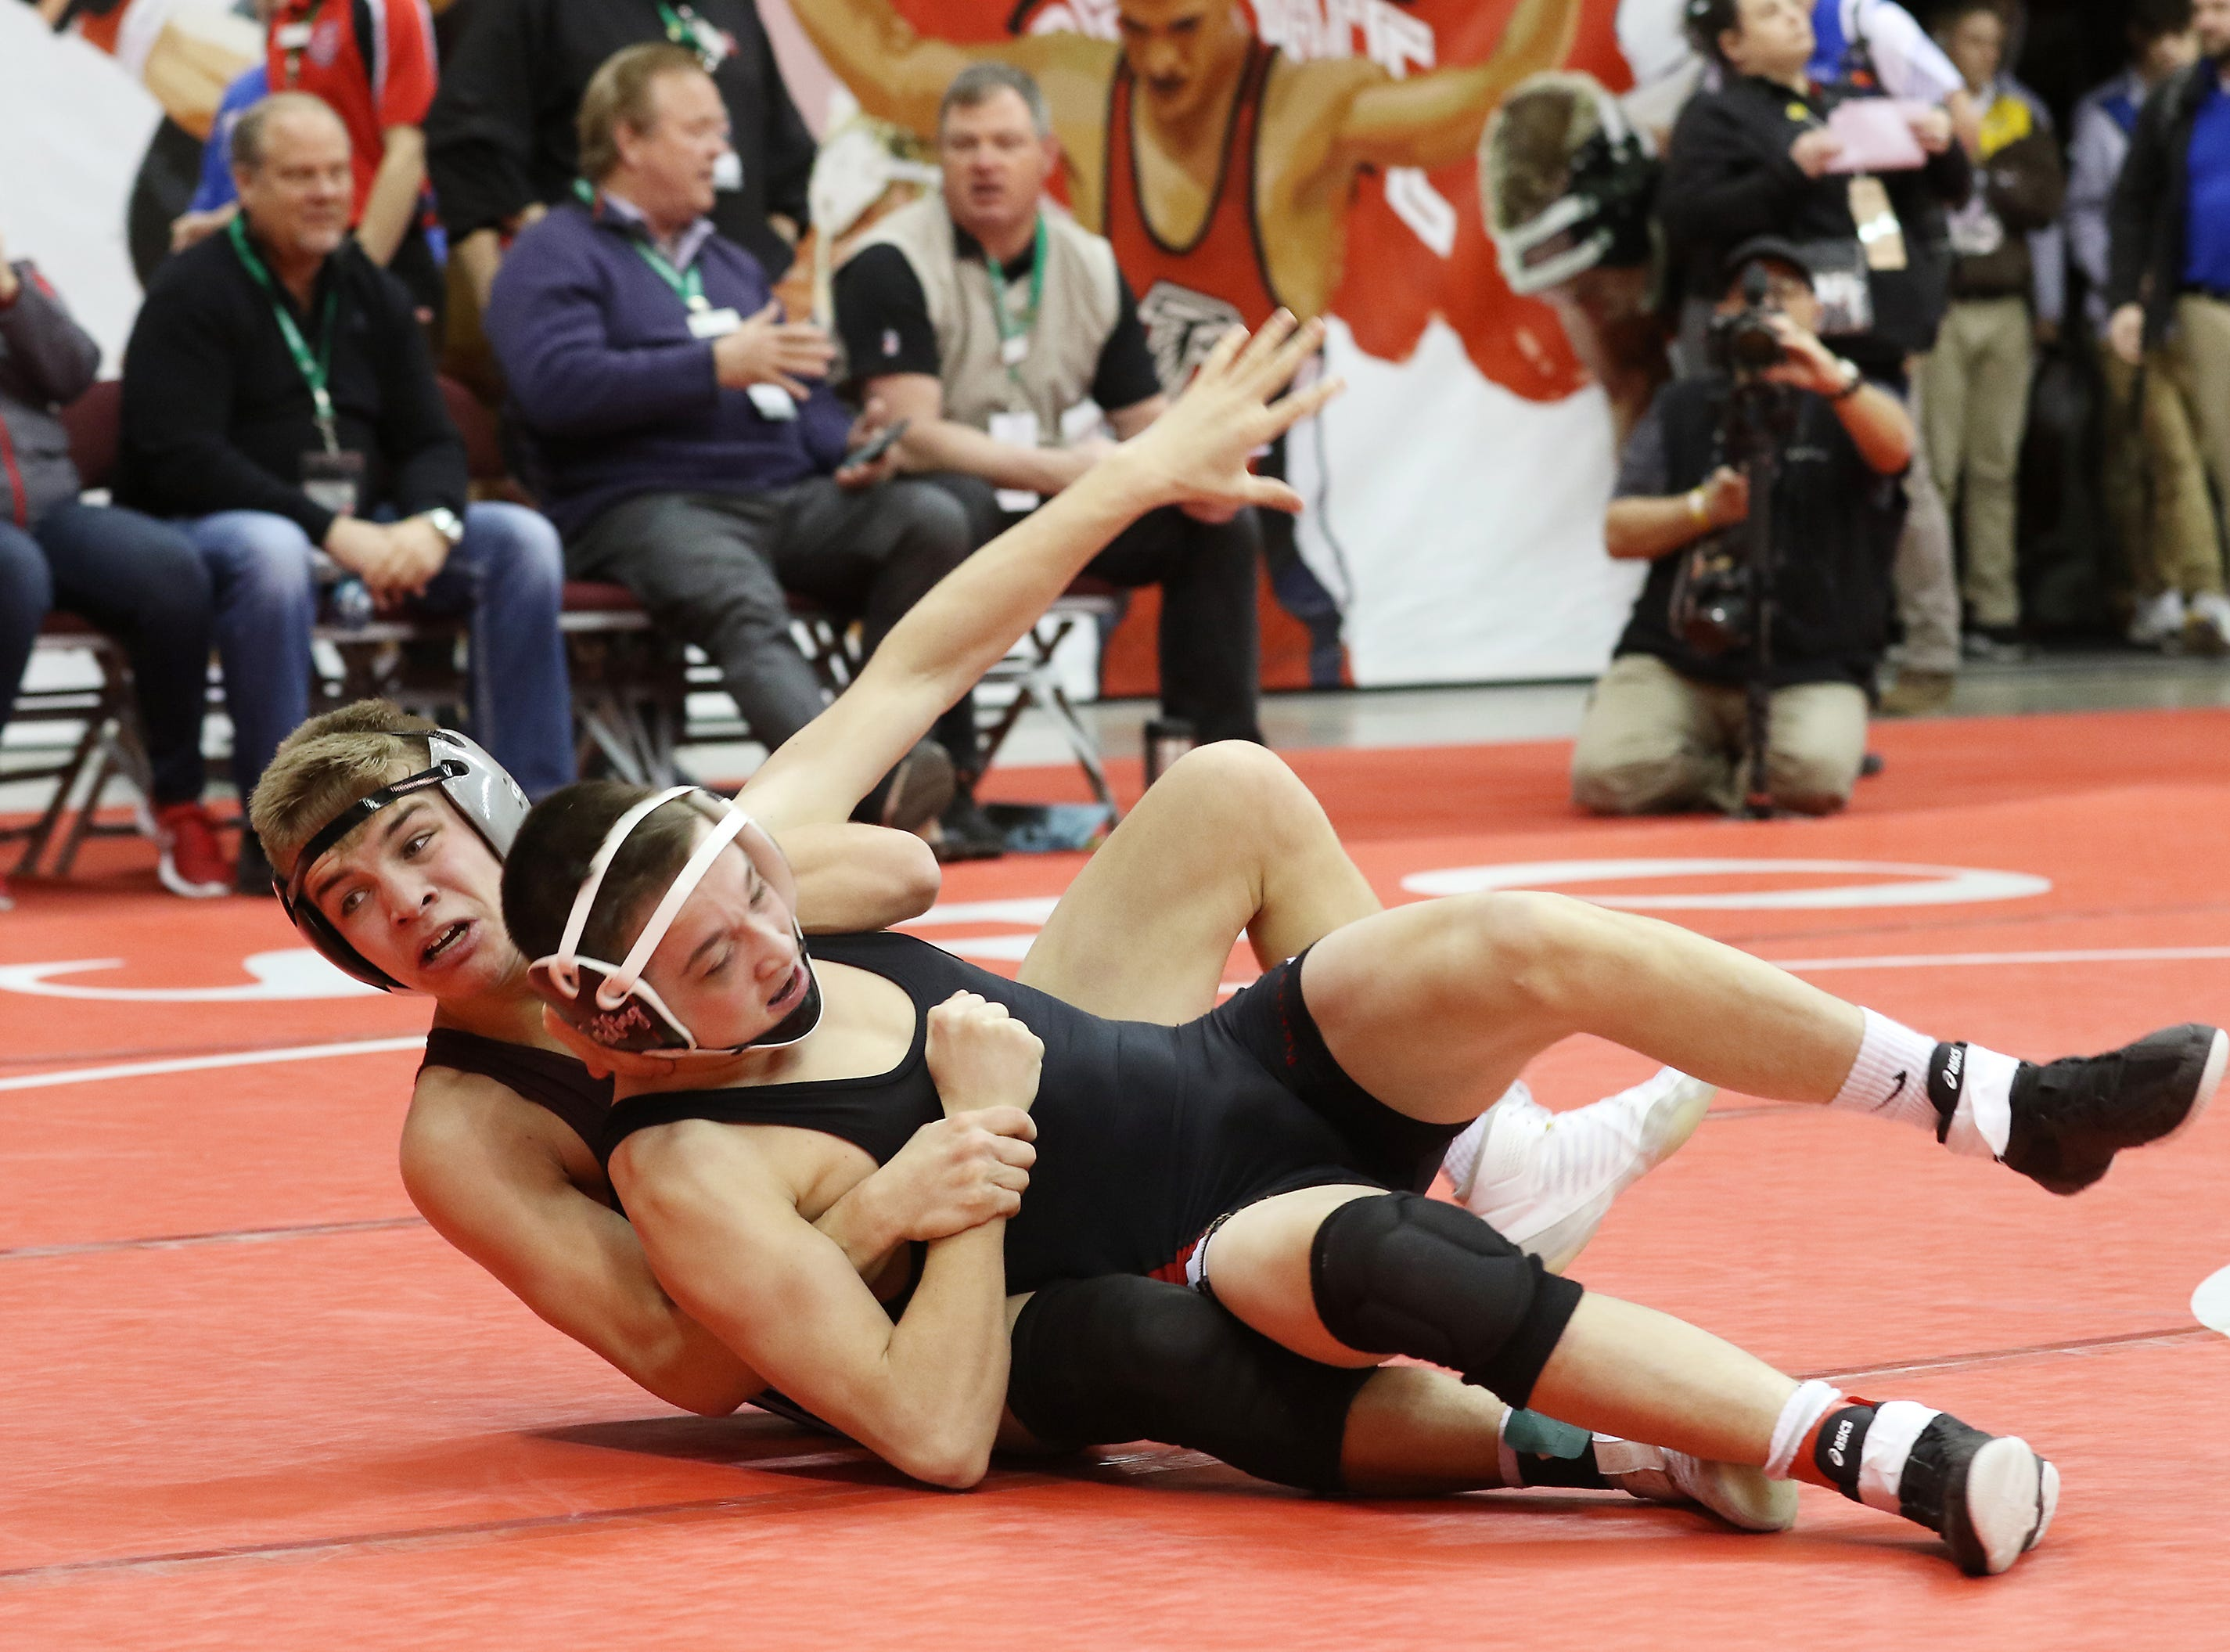 Genoa's Oscar Sanchez wrestles Cardington Lincoln's Draven Hubley in the 120 pound weight class at the Division III state wrestling tournament on Friday.